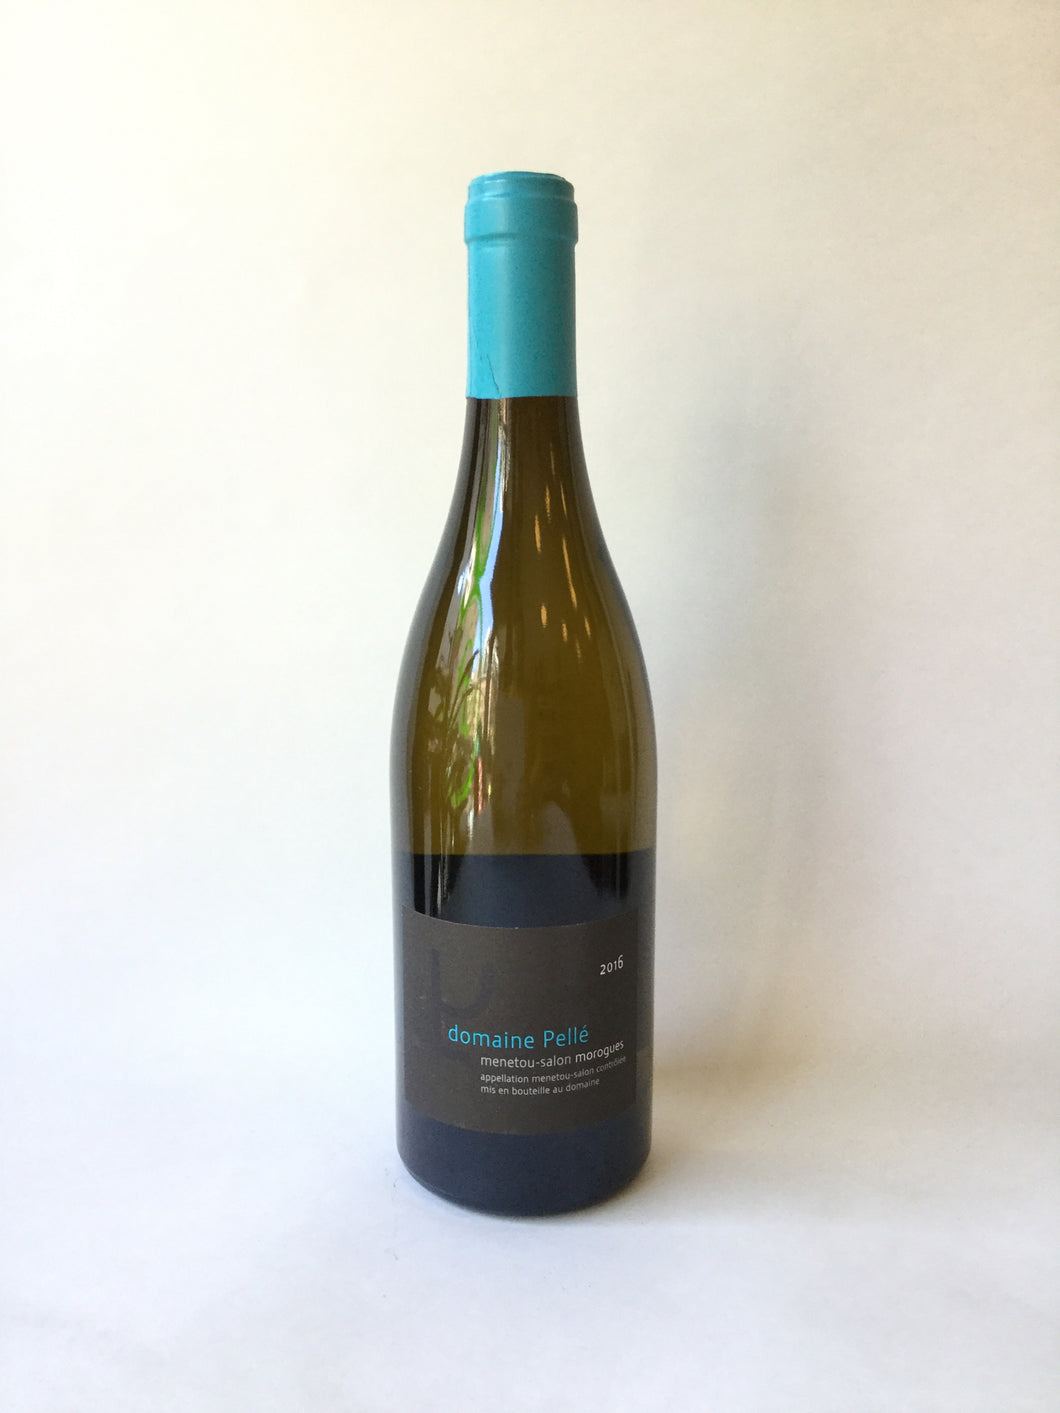 Domaine Pelle, Menetou-Salon Morogues, 2016, 750ml - Frankly Wines